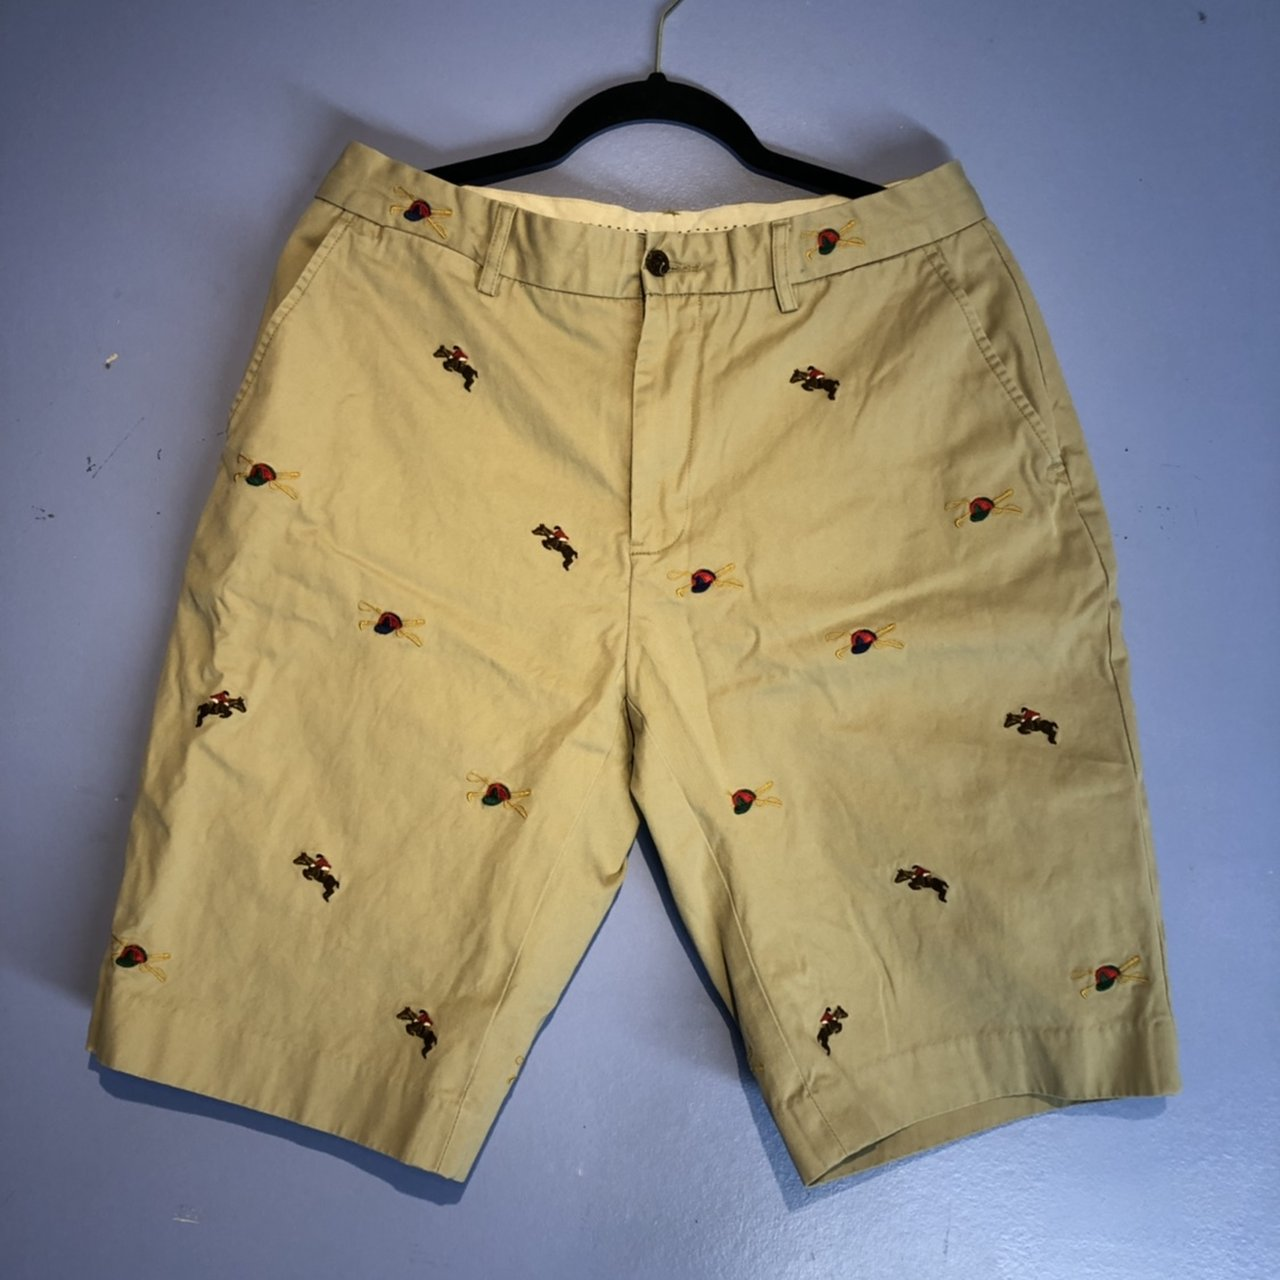 5ea25357f0 discount polo shorts with horses all over them b75e6 5472a